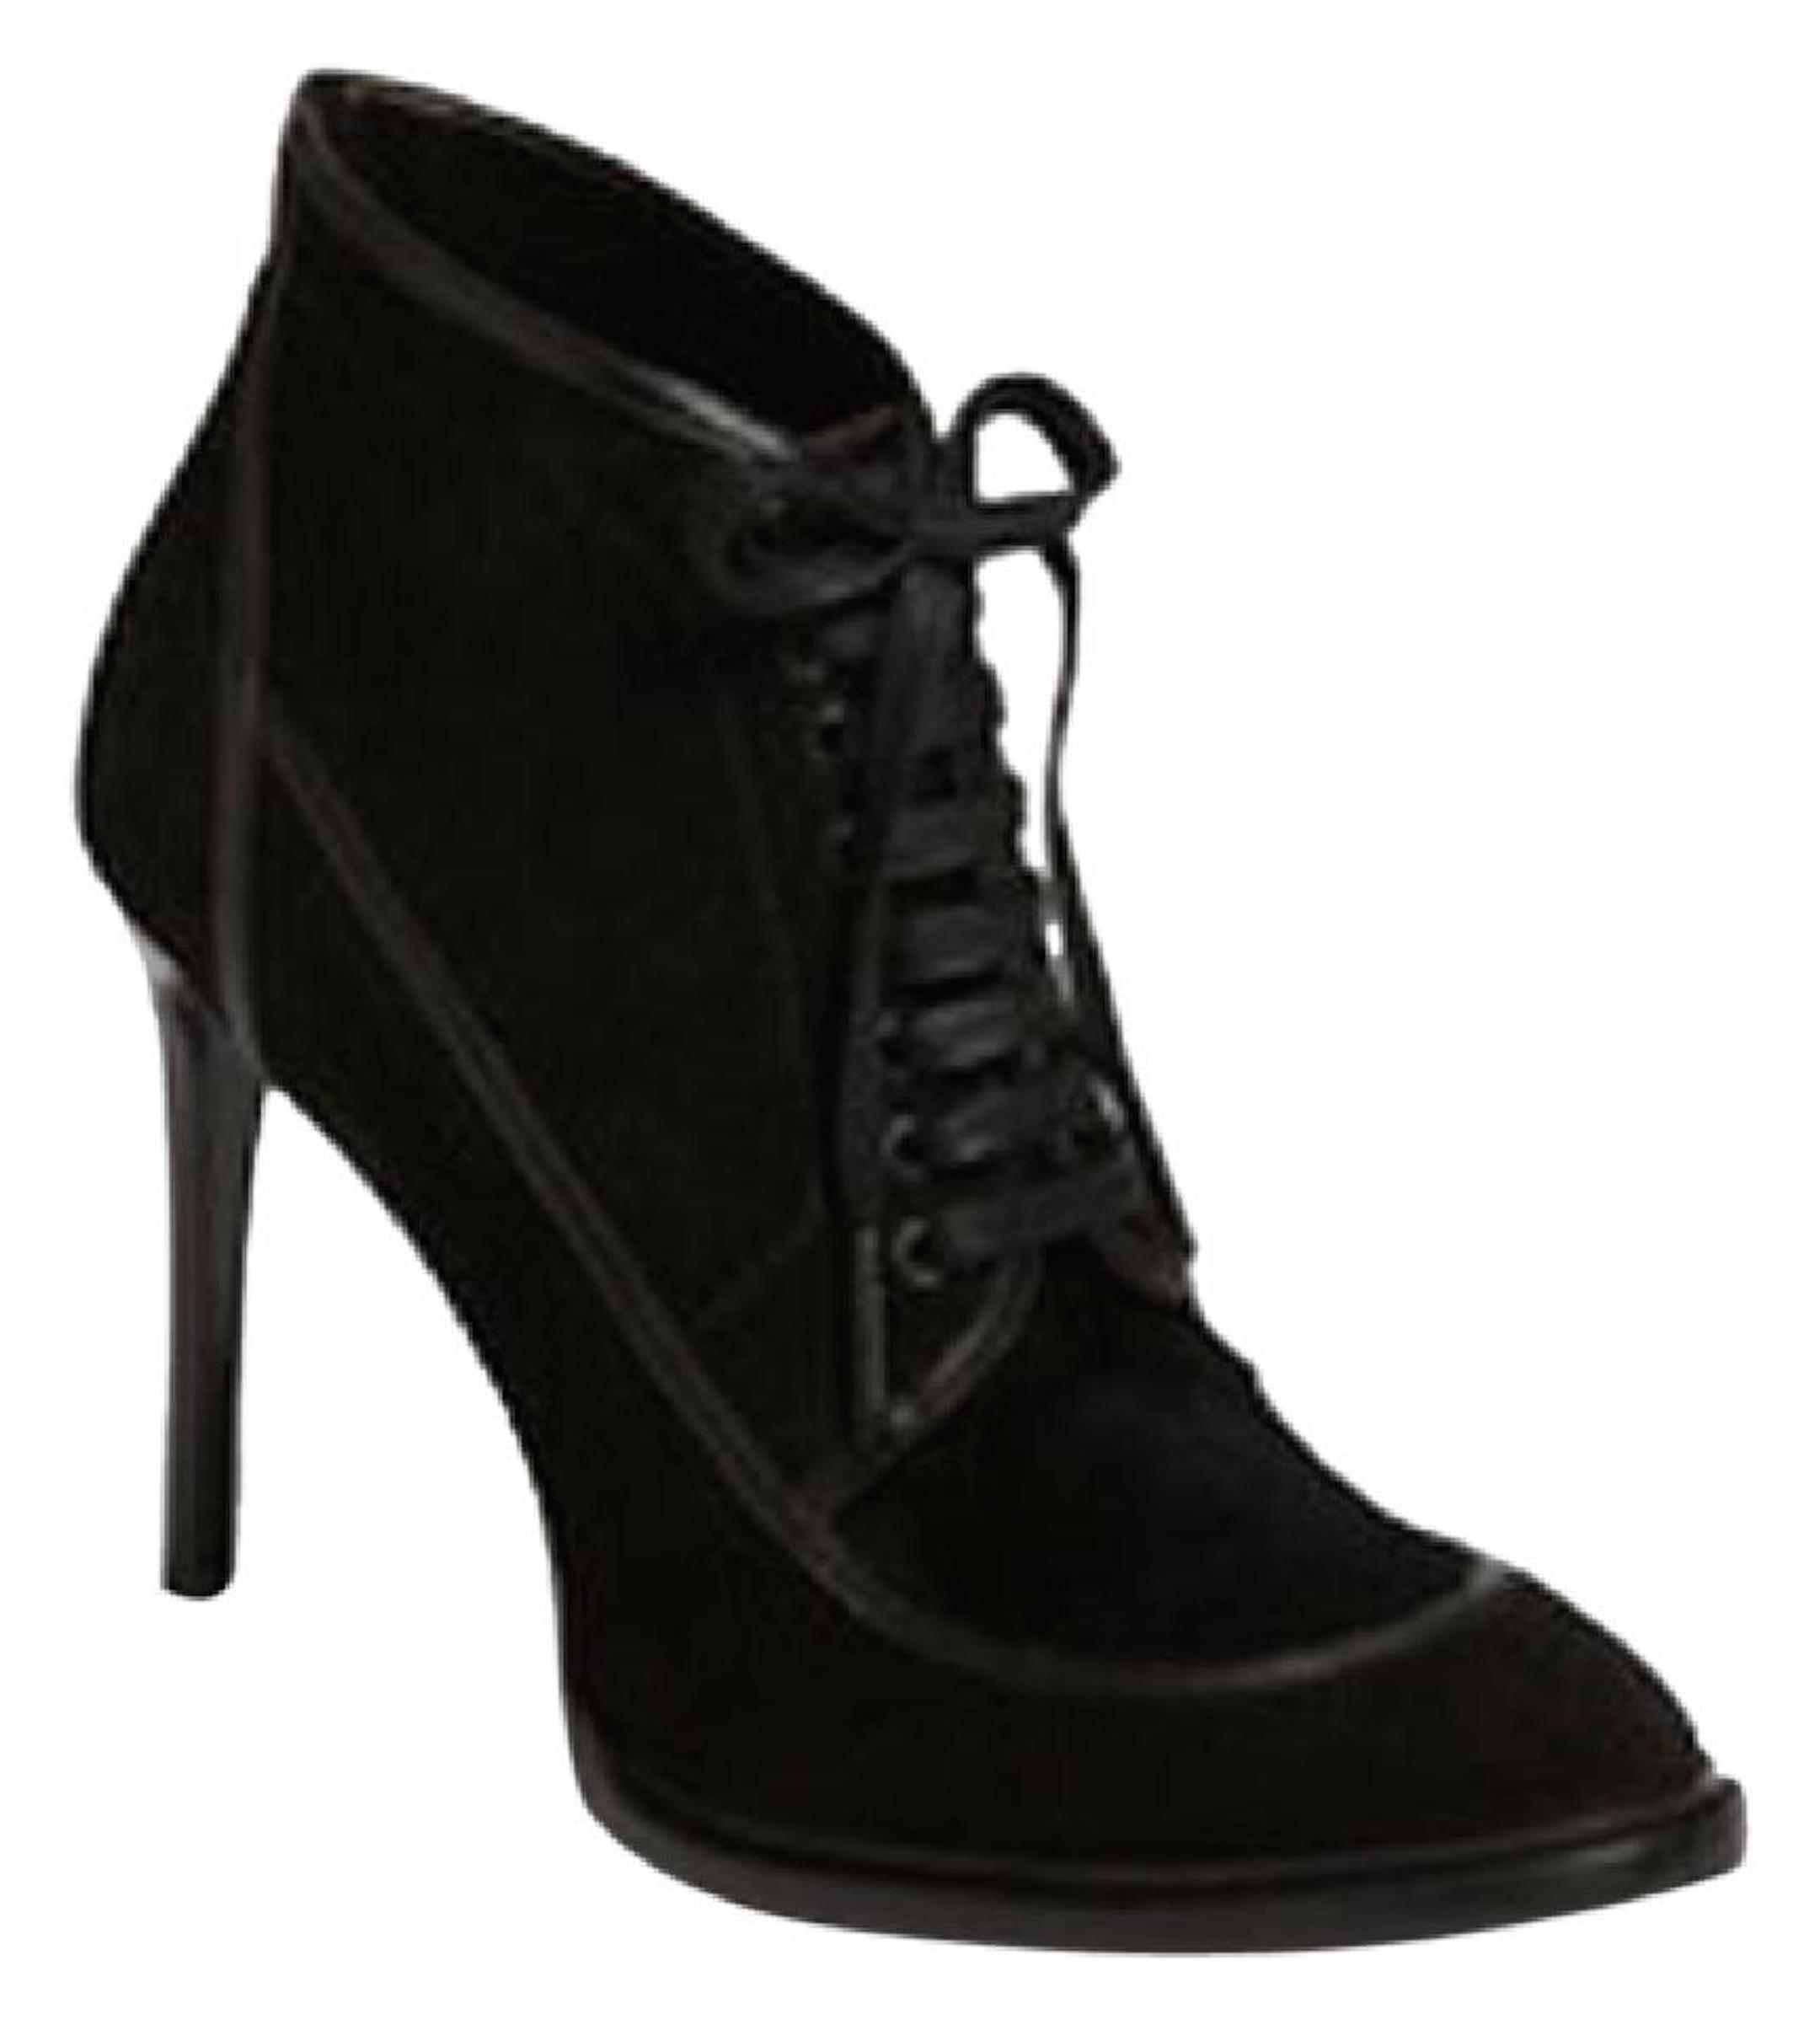 Burberry Black Heritage Panfield Suede Ankle Eu 36 Boots/Booties Size US 6 Regular (M, B)